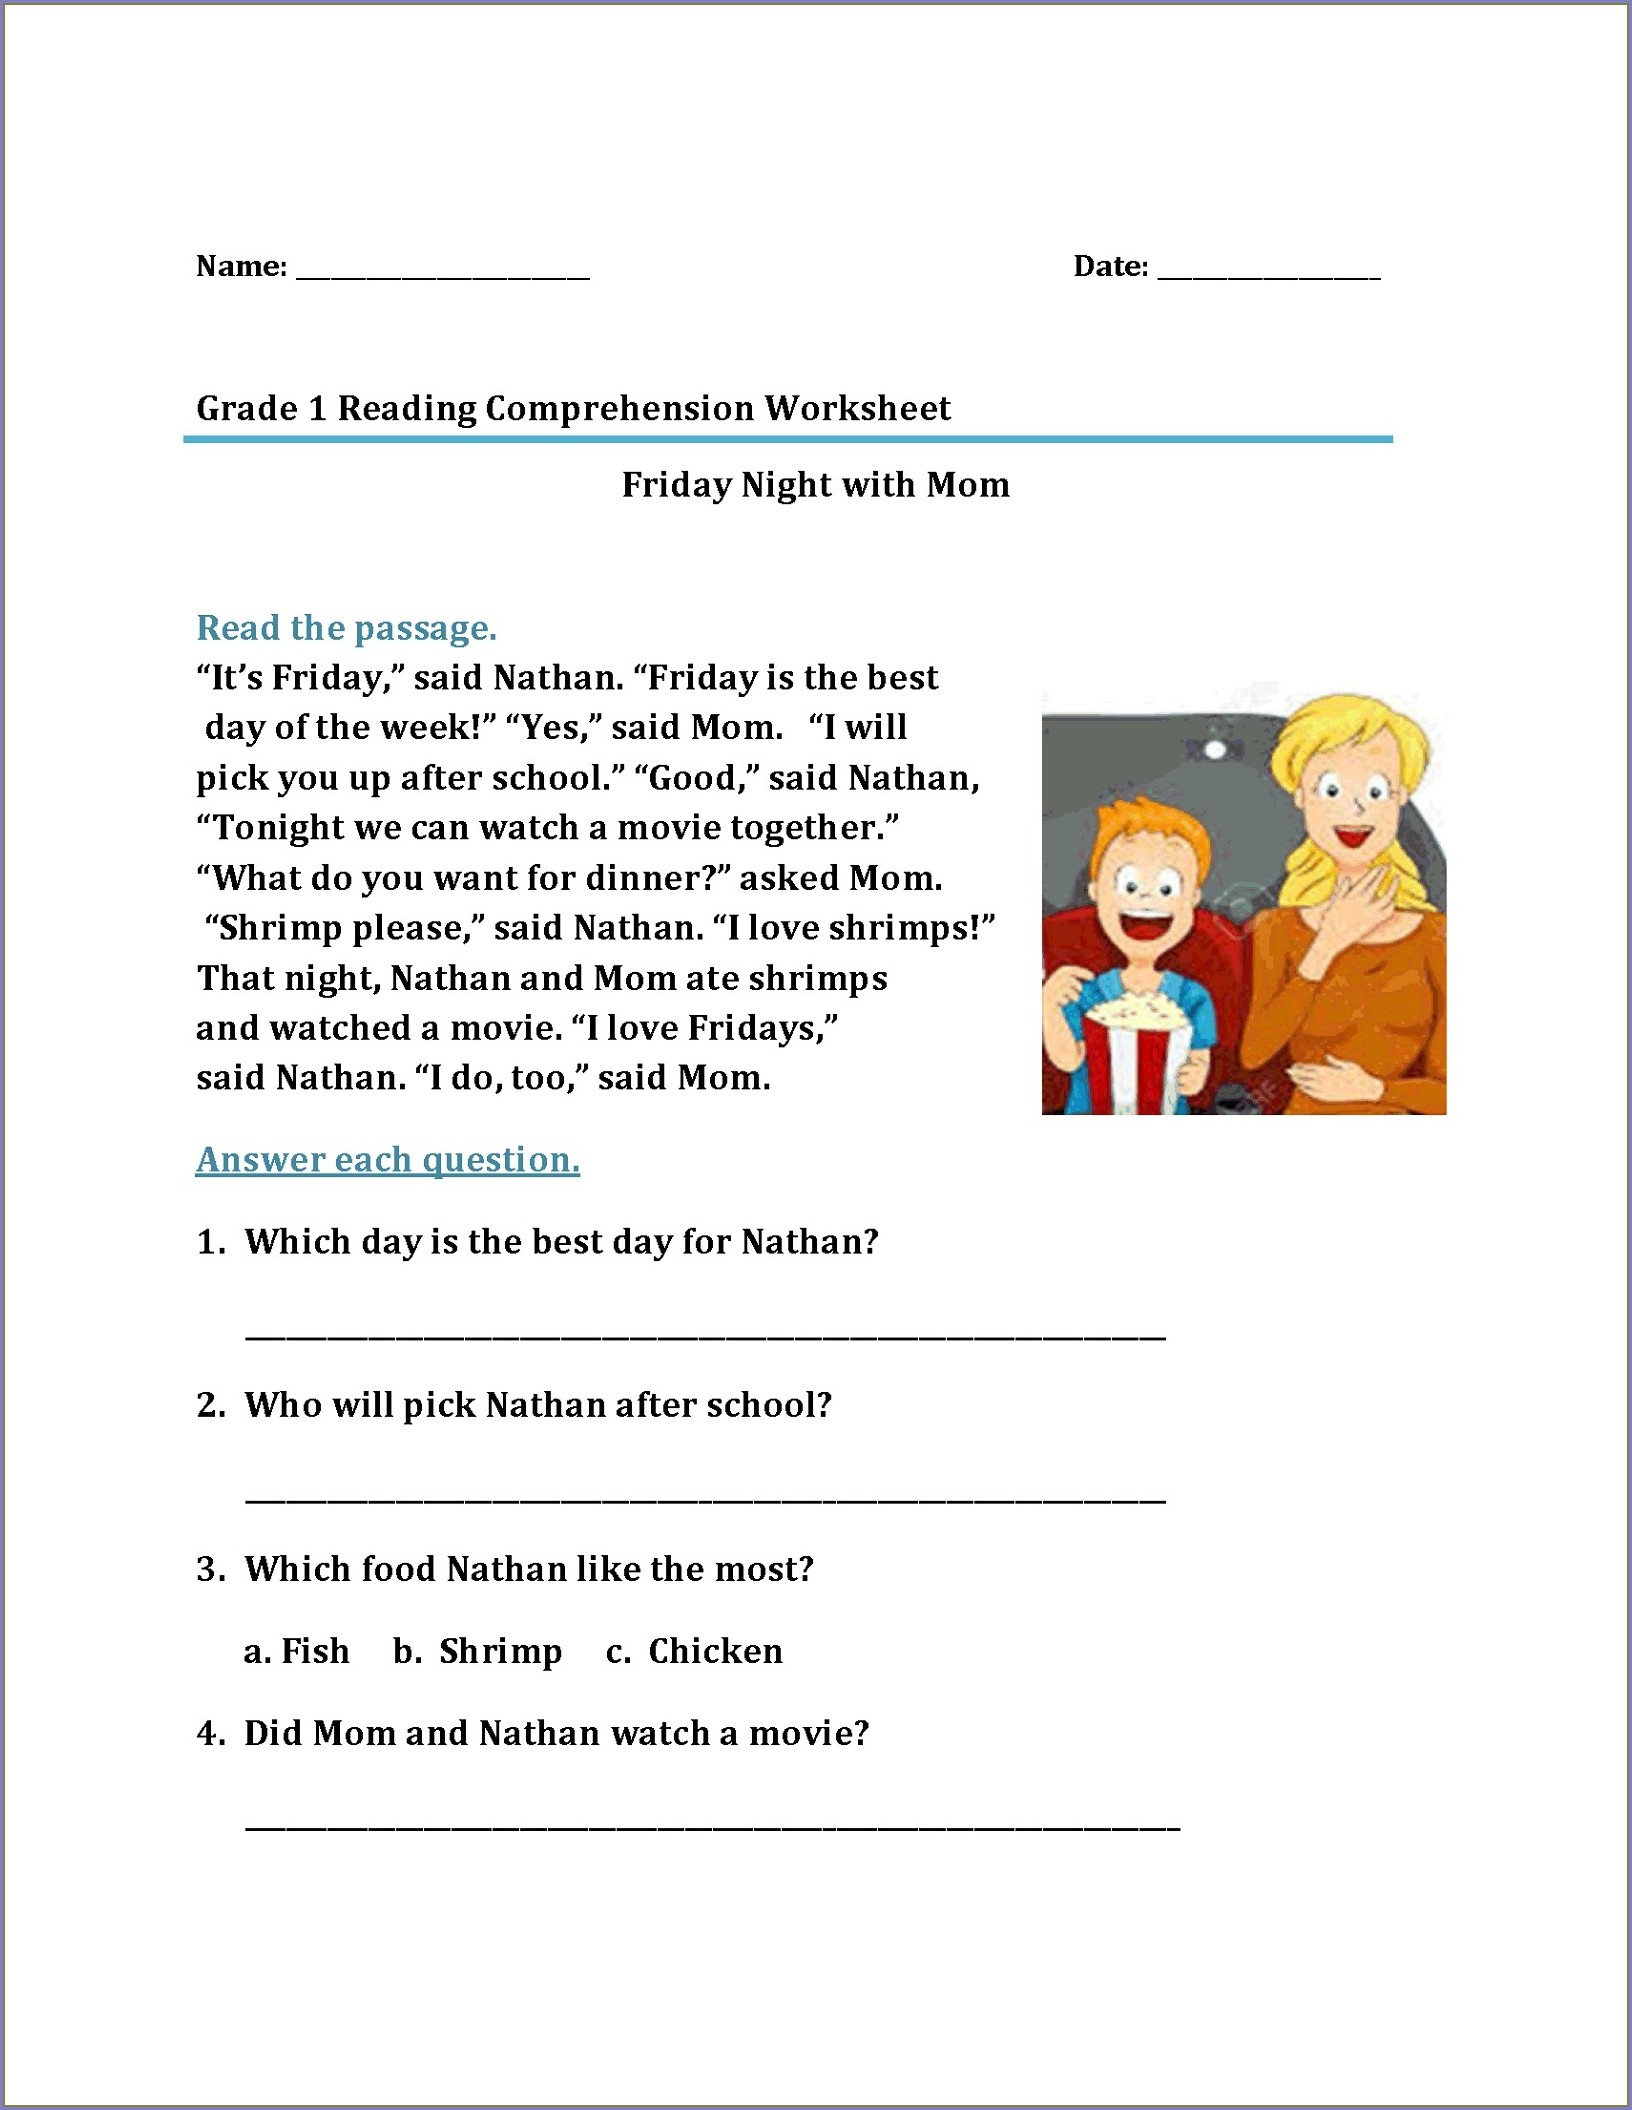 Reading Comprehension Exercises With Answers For Grade 1